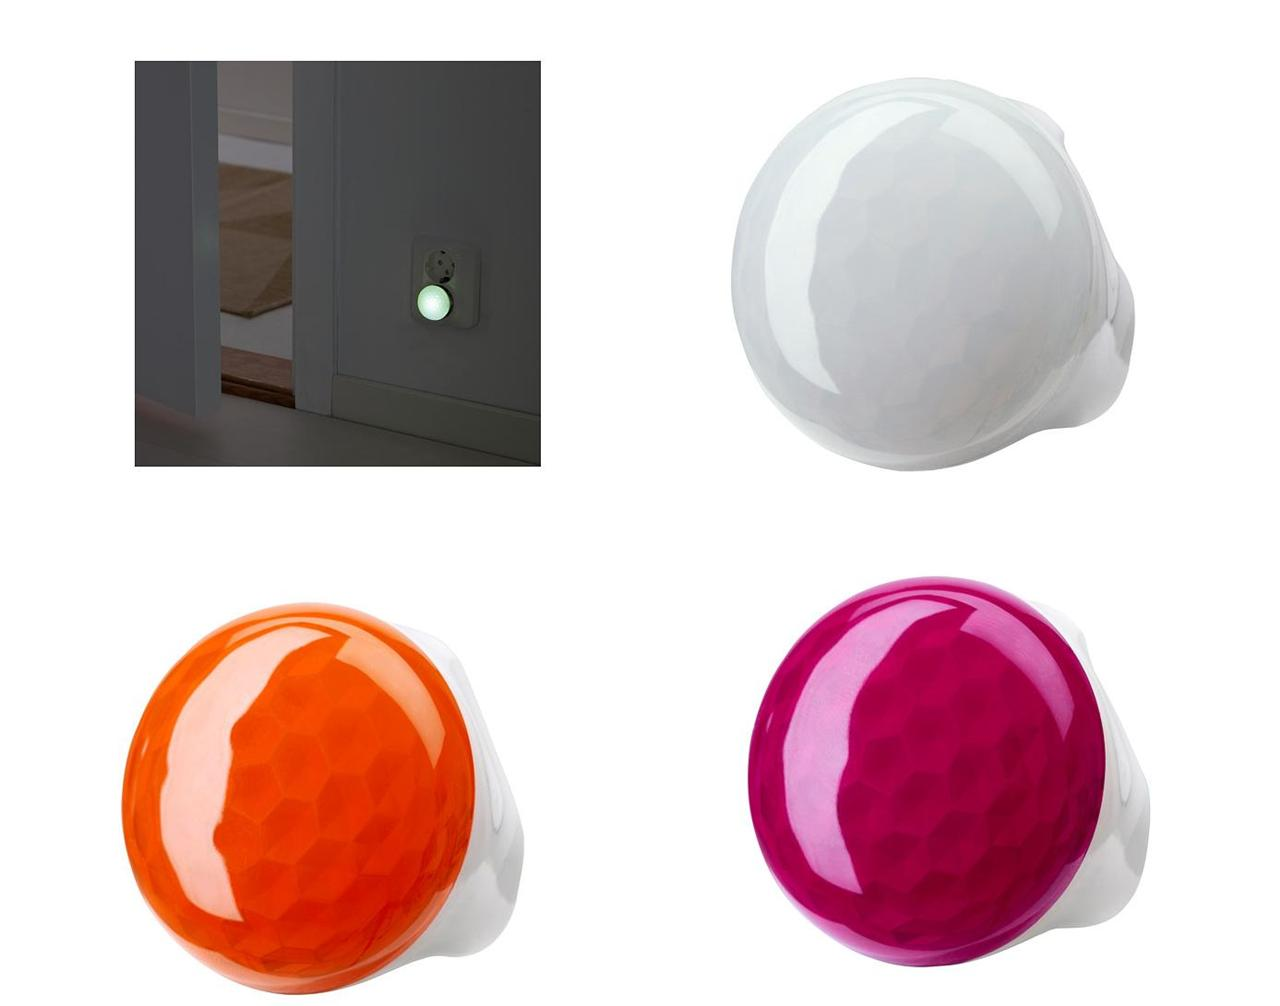 Ikea Patrull Night Light Review – Nazarm.com